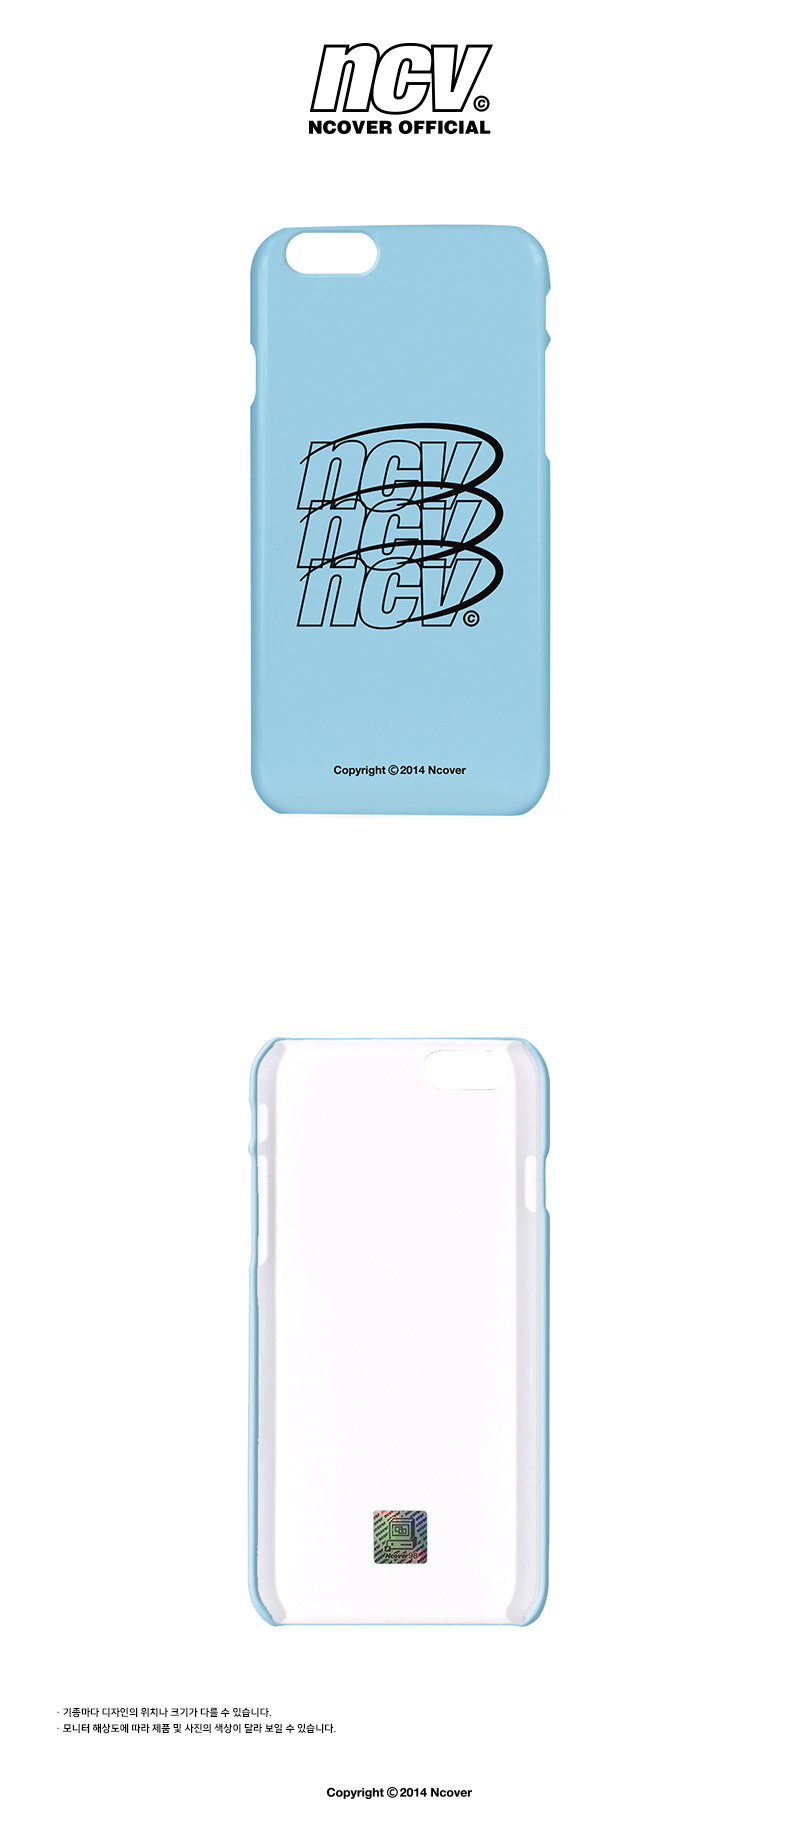 Triple NCV logo case-sky blue.jpg